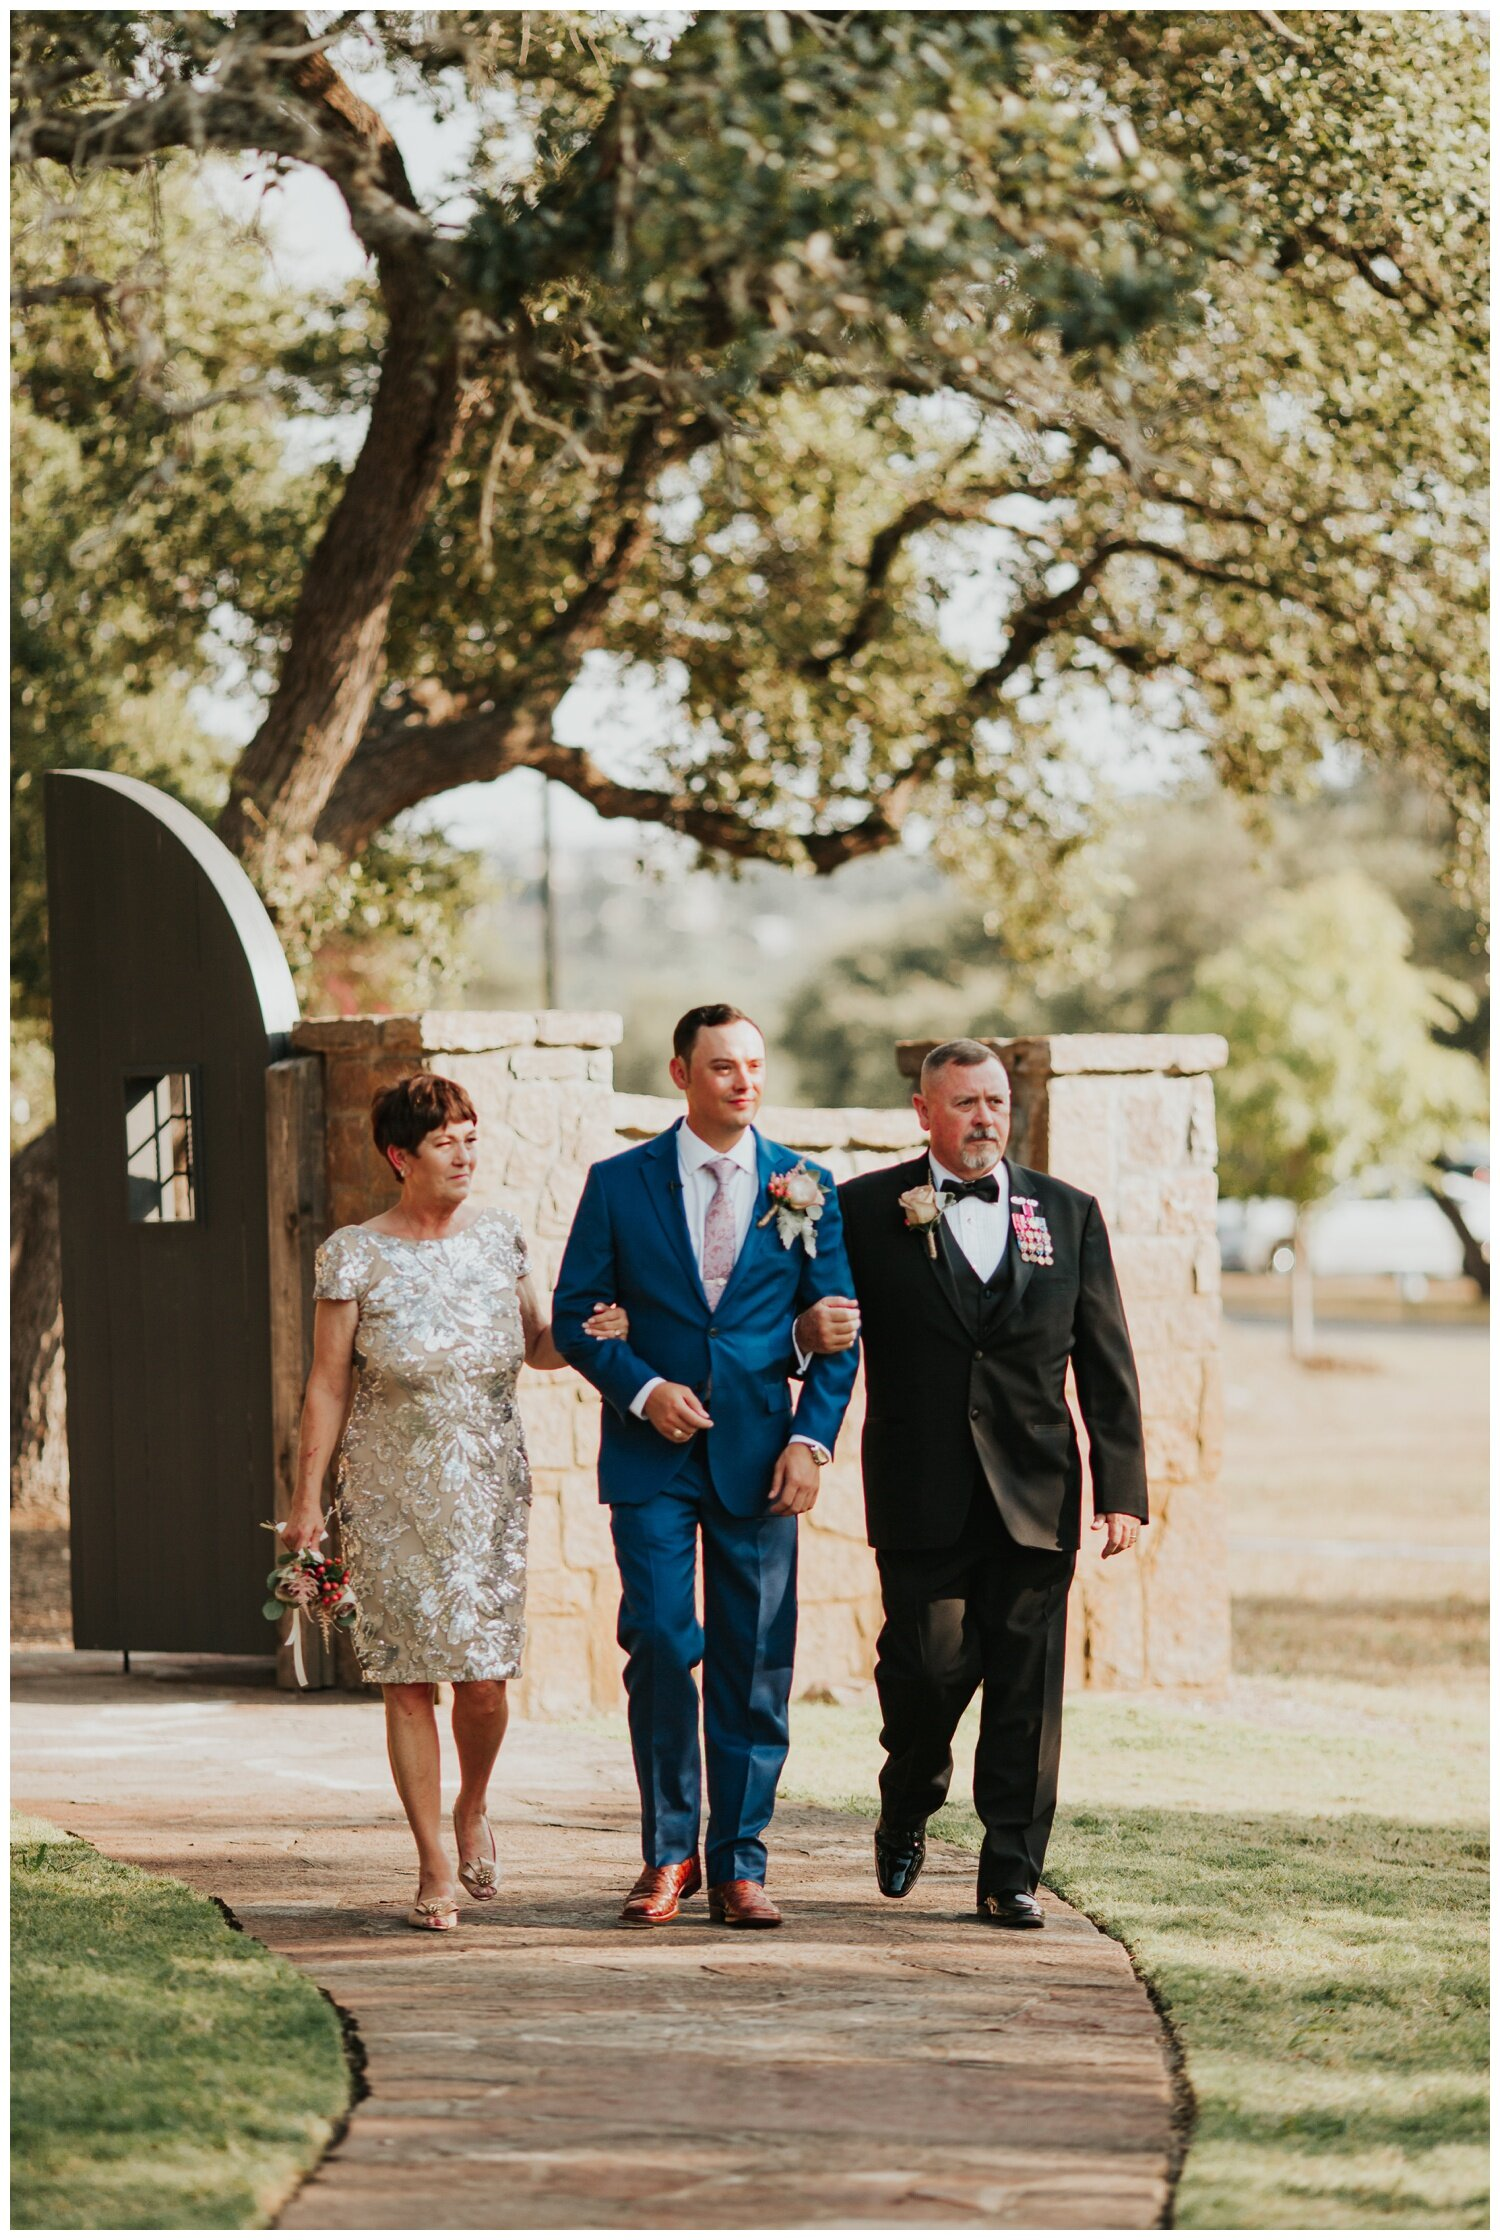 Modern Wedding at Ma Maison in Dripping Springs, Austin, Texas (Joshua and Parisa – Austin Wedding Photographer)_0033.jpg